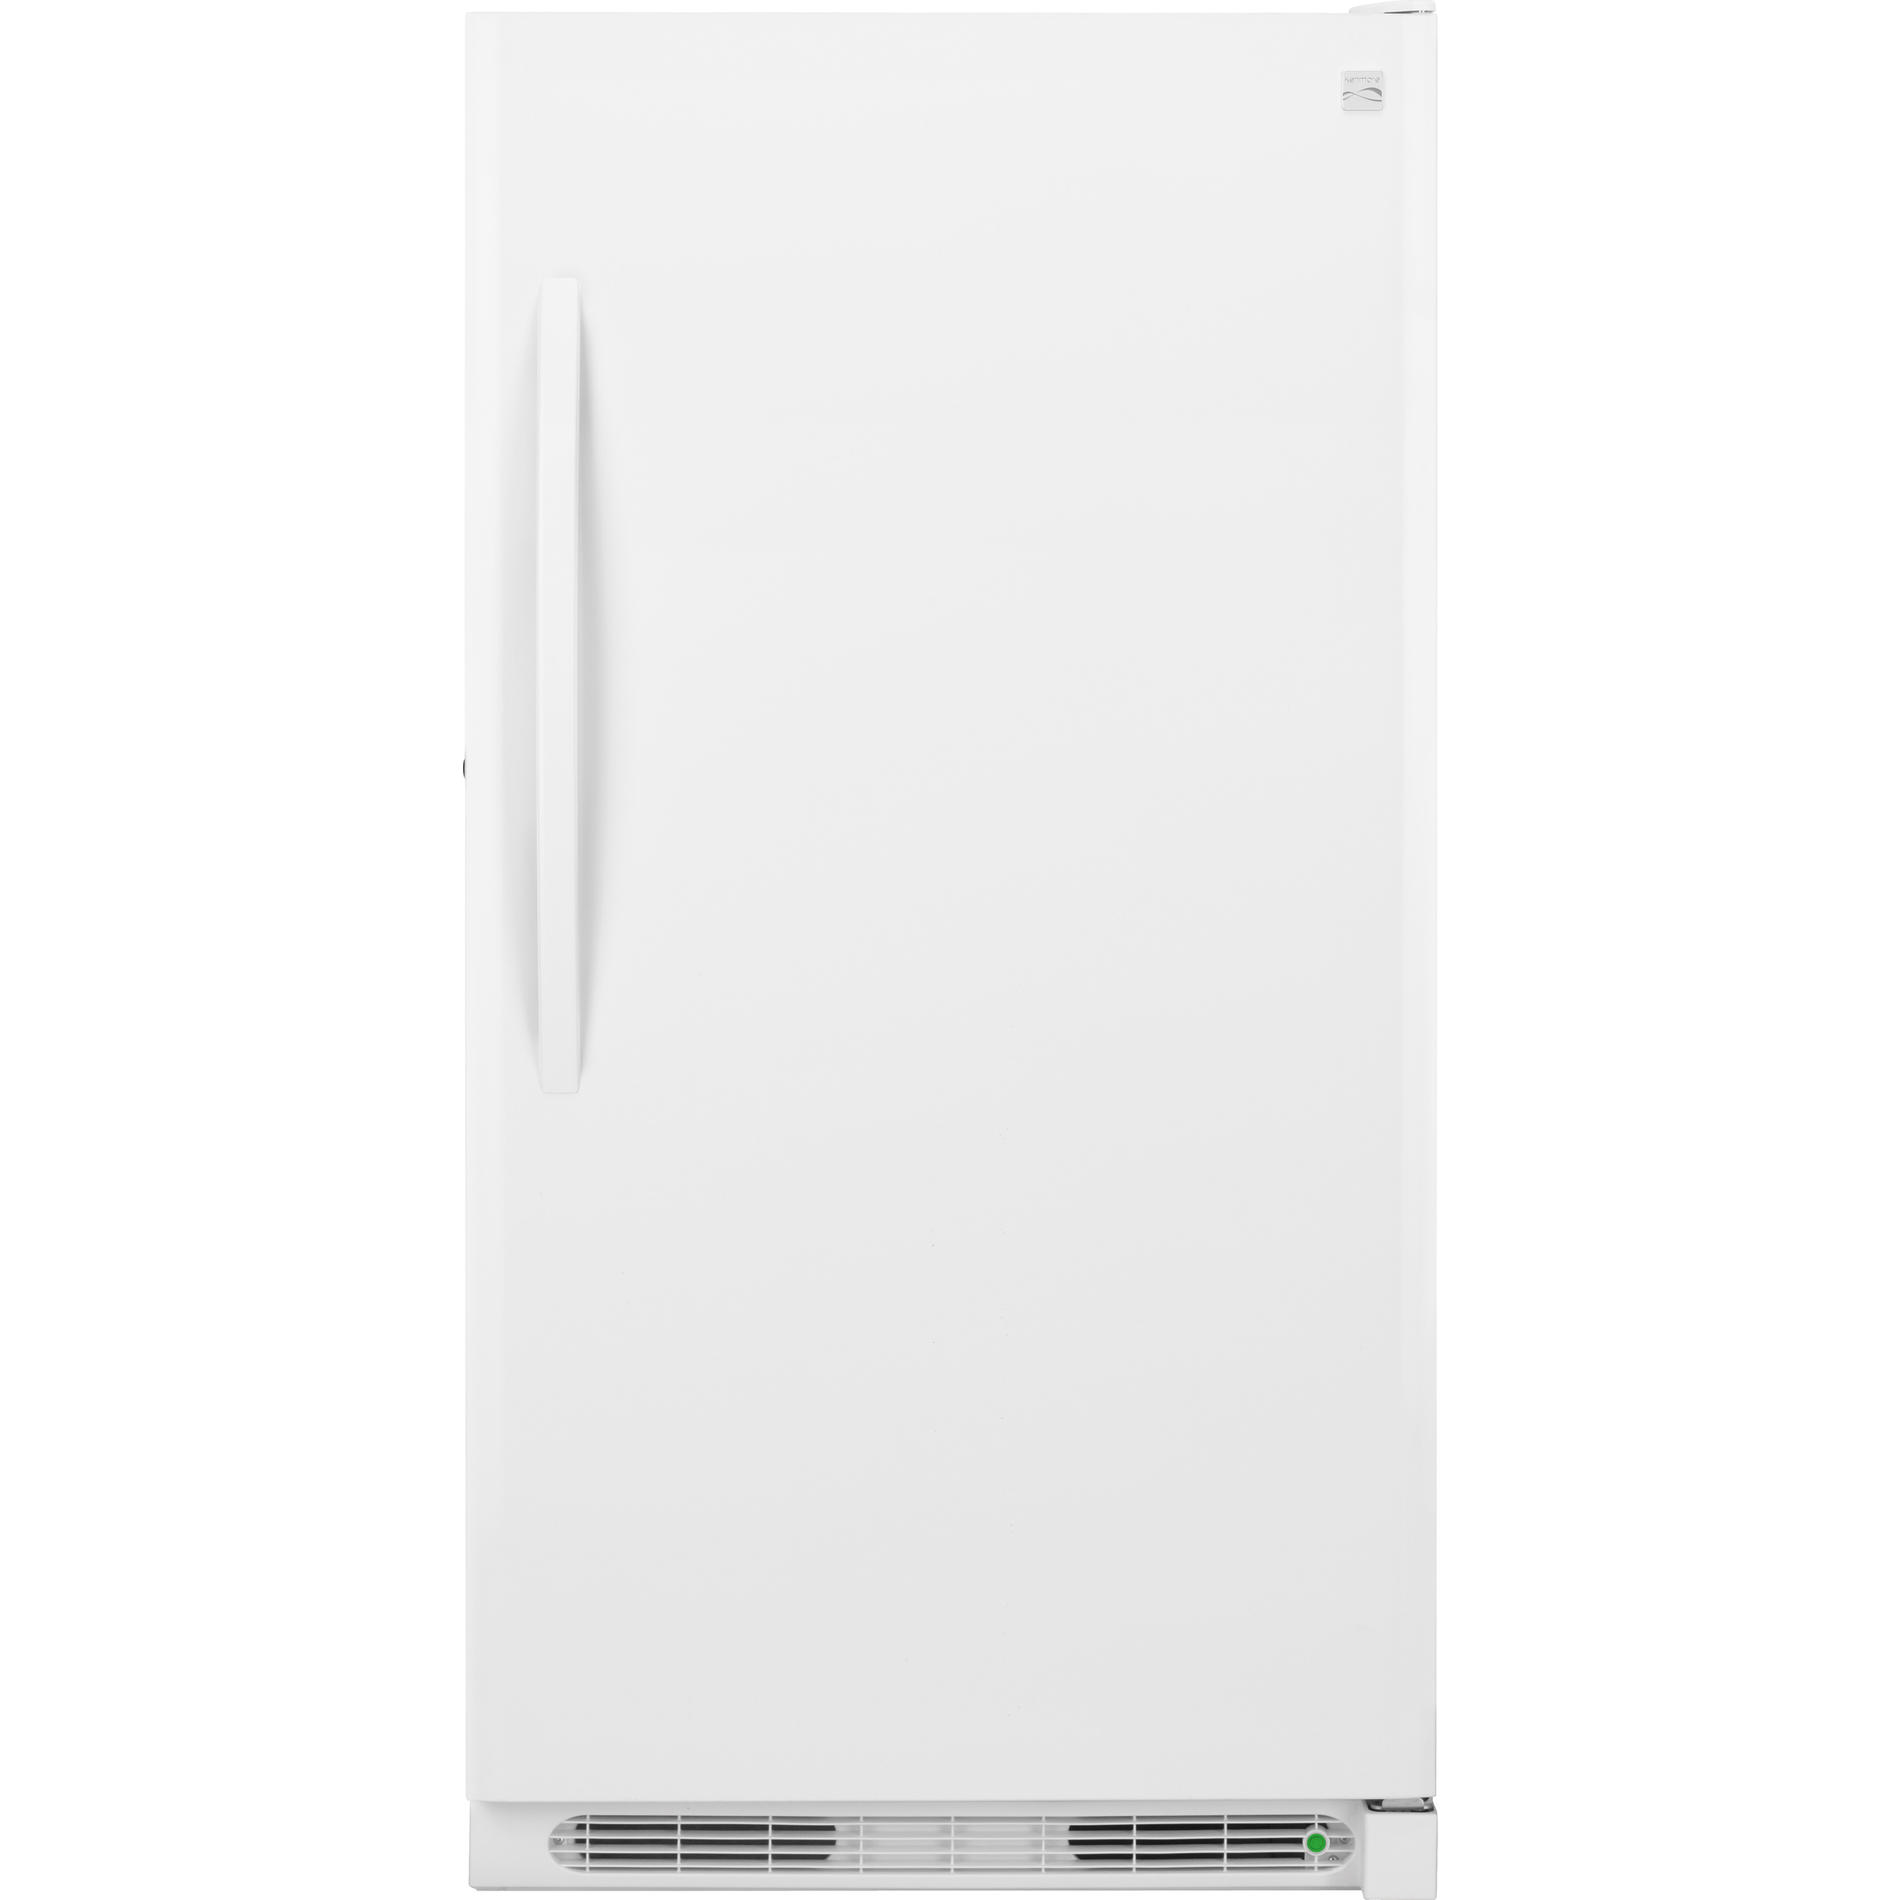 Kenmore 22442 13.8 cu. ft. Upright Freezer - White